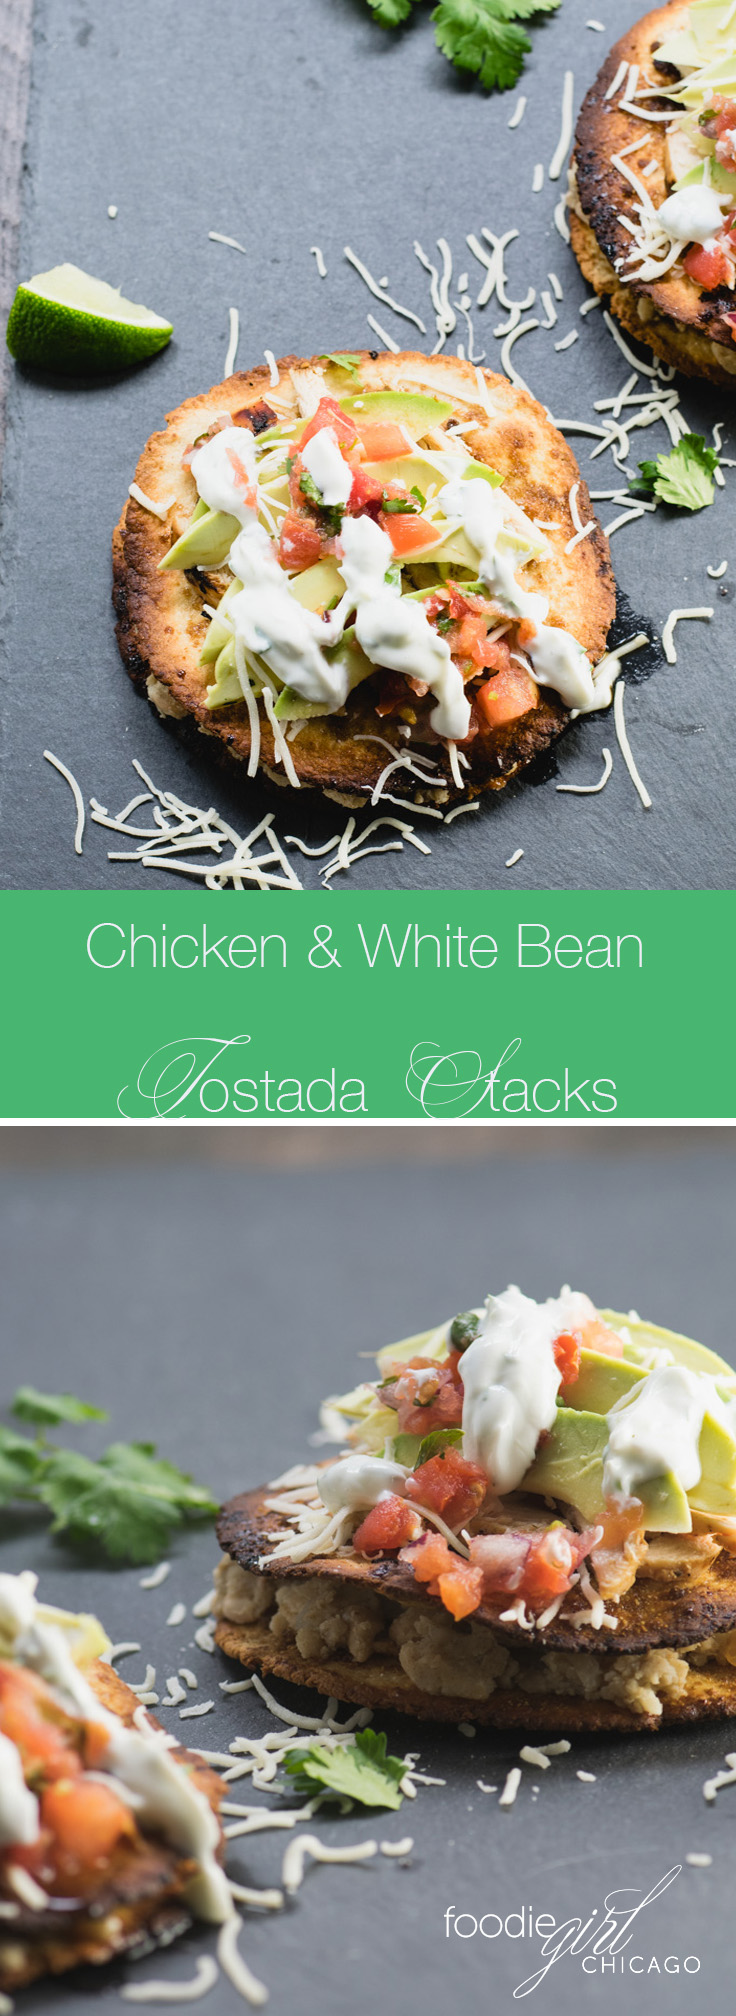 Chicken & White Bean Tostada Stacks